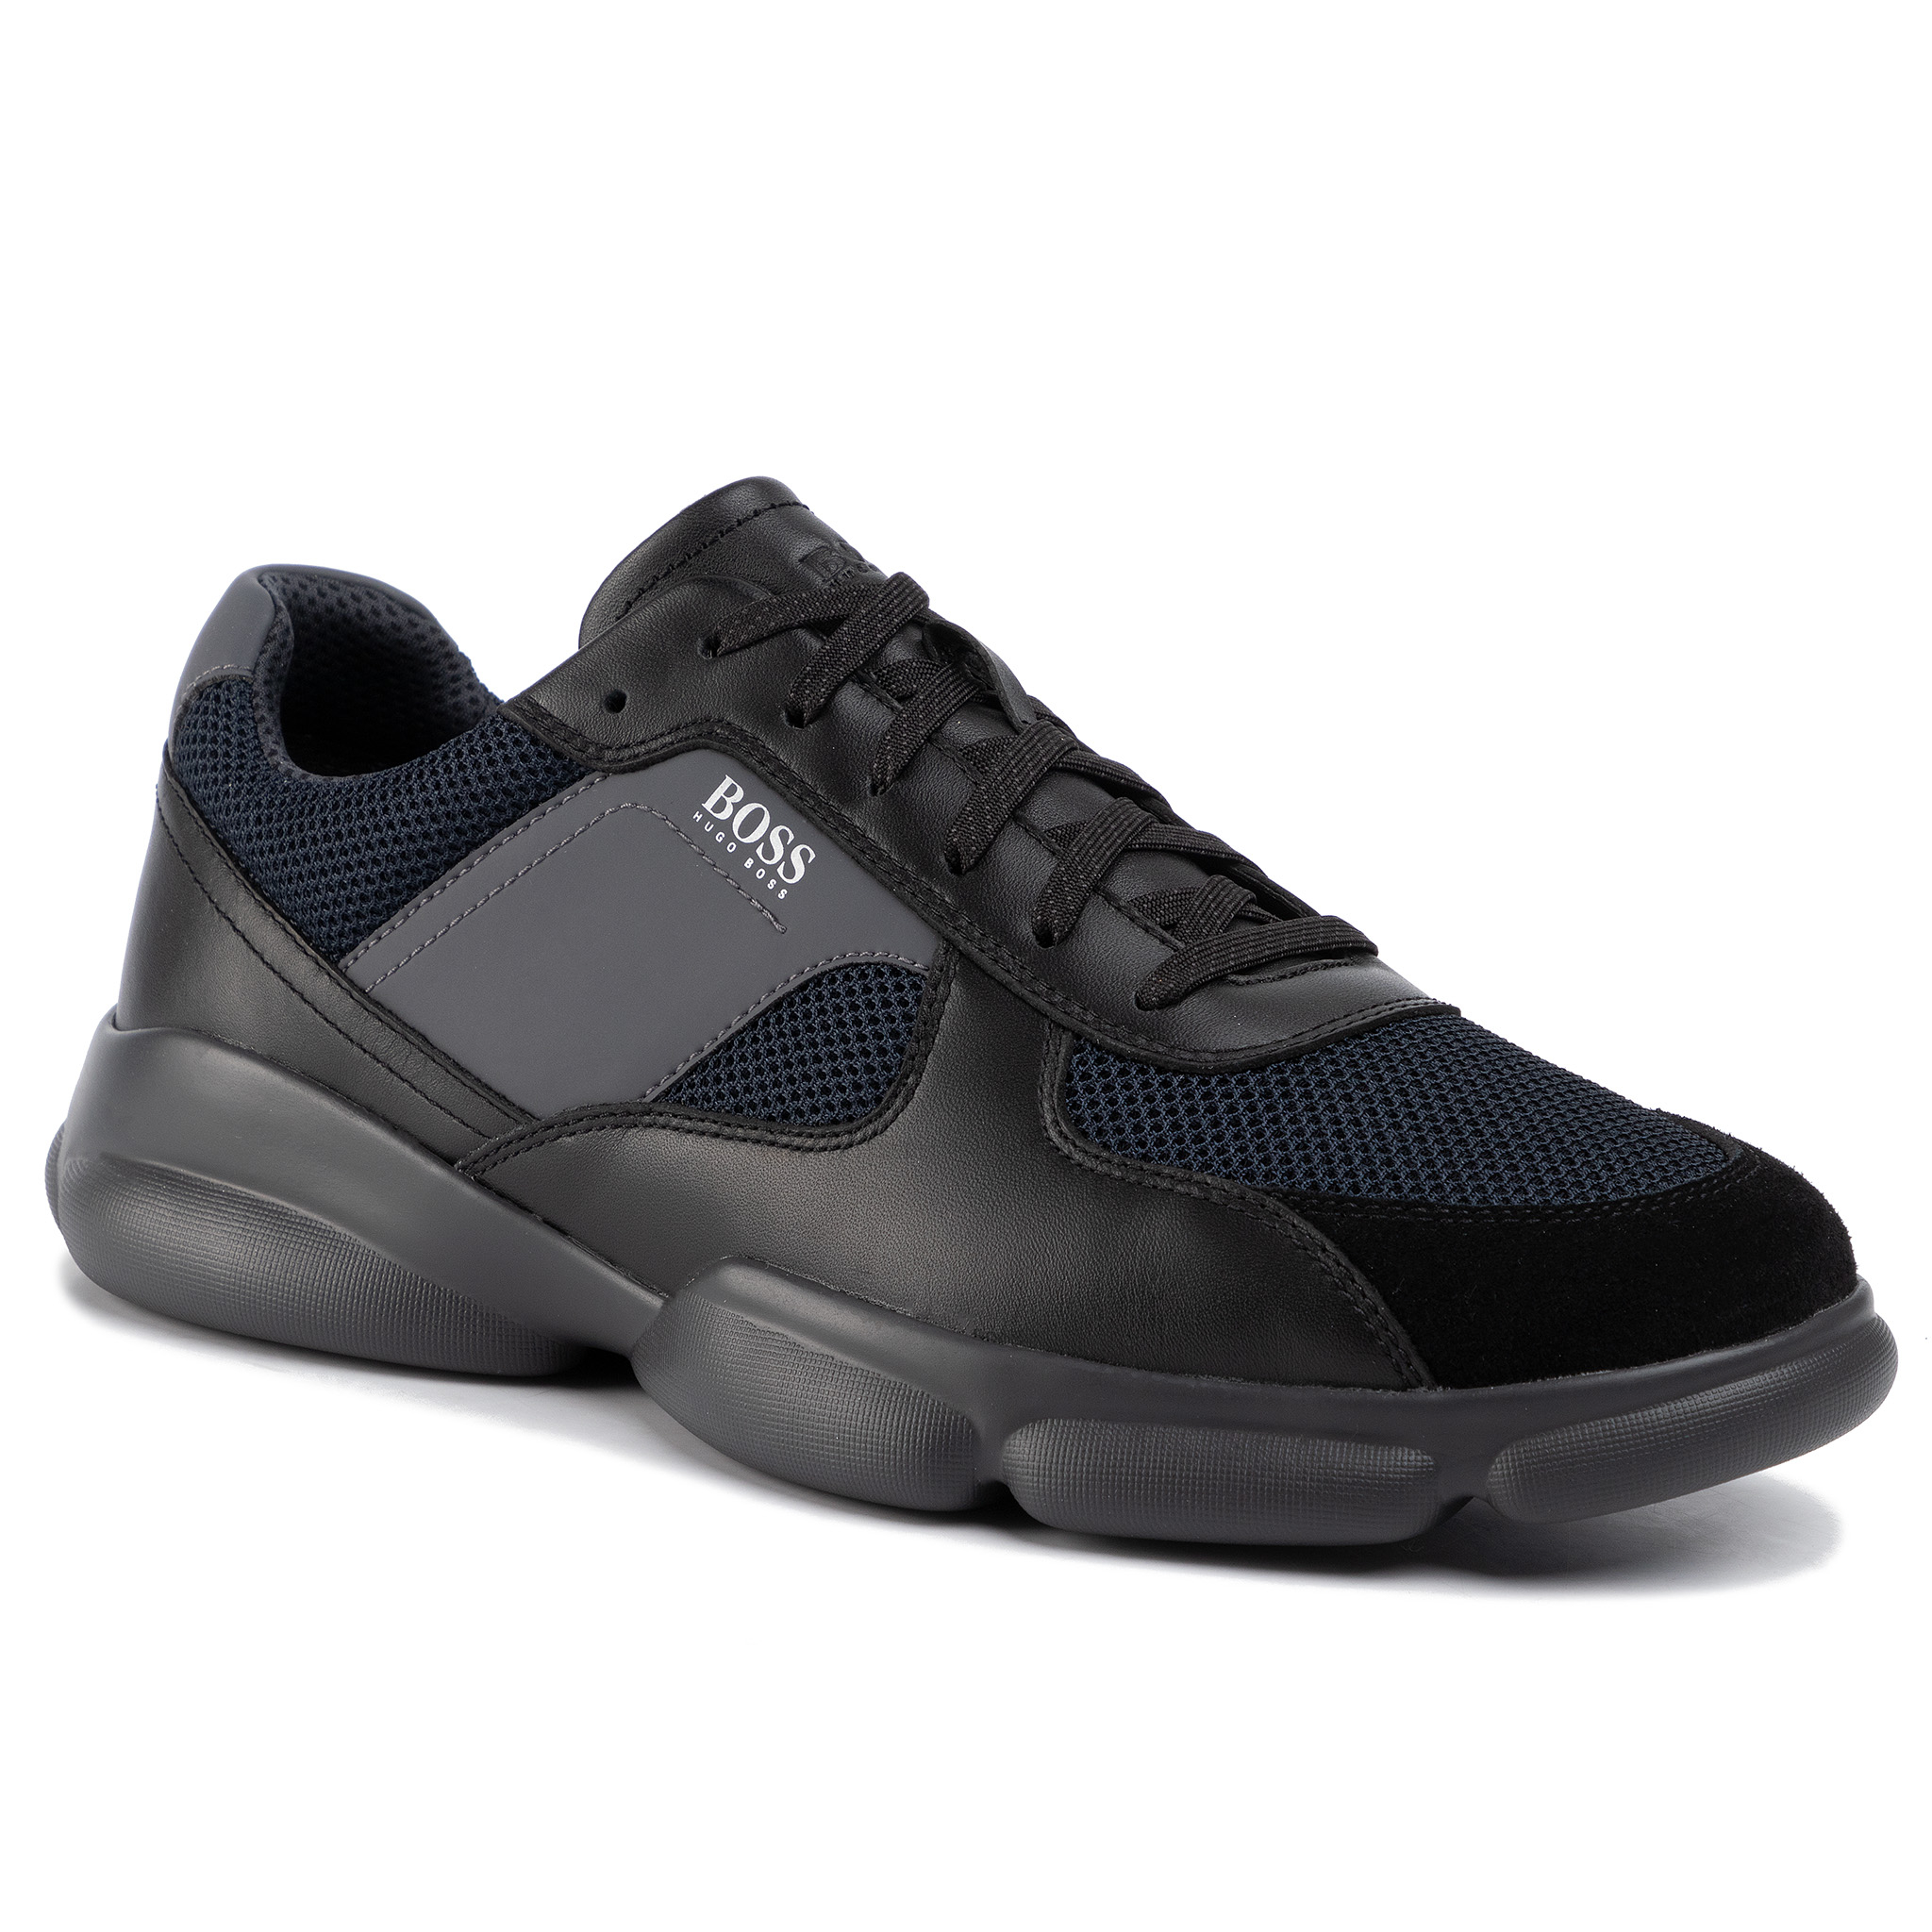 Sneakers BOSS - Rapid 50422403 10214593 01 Black 001